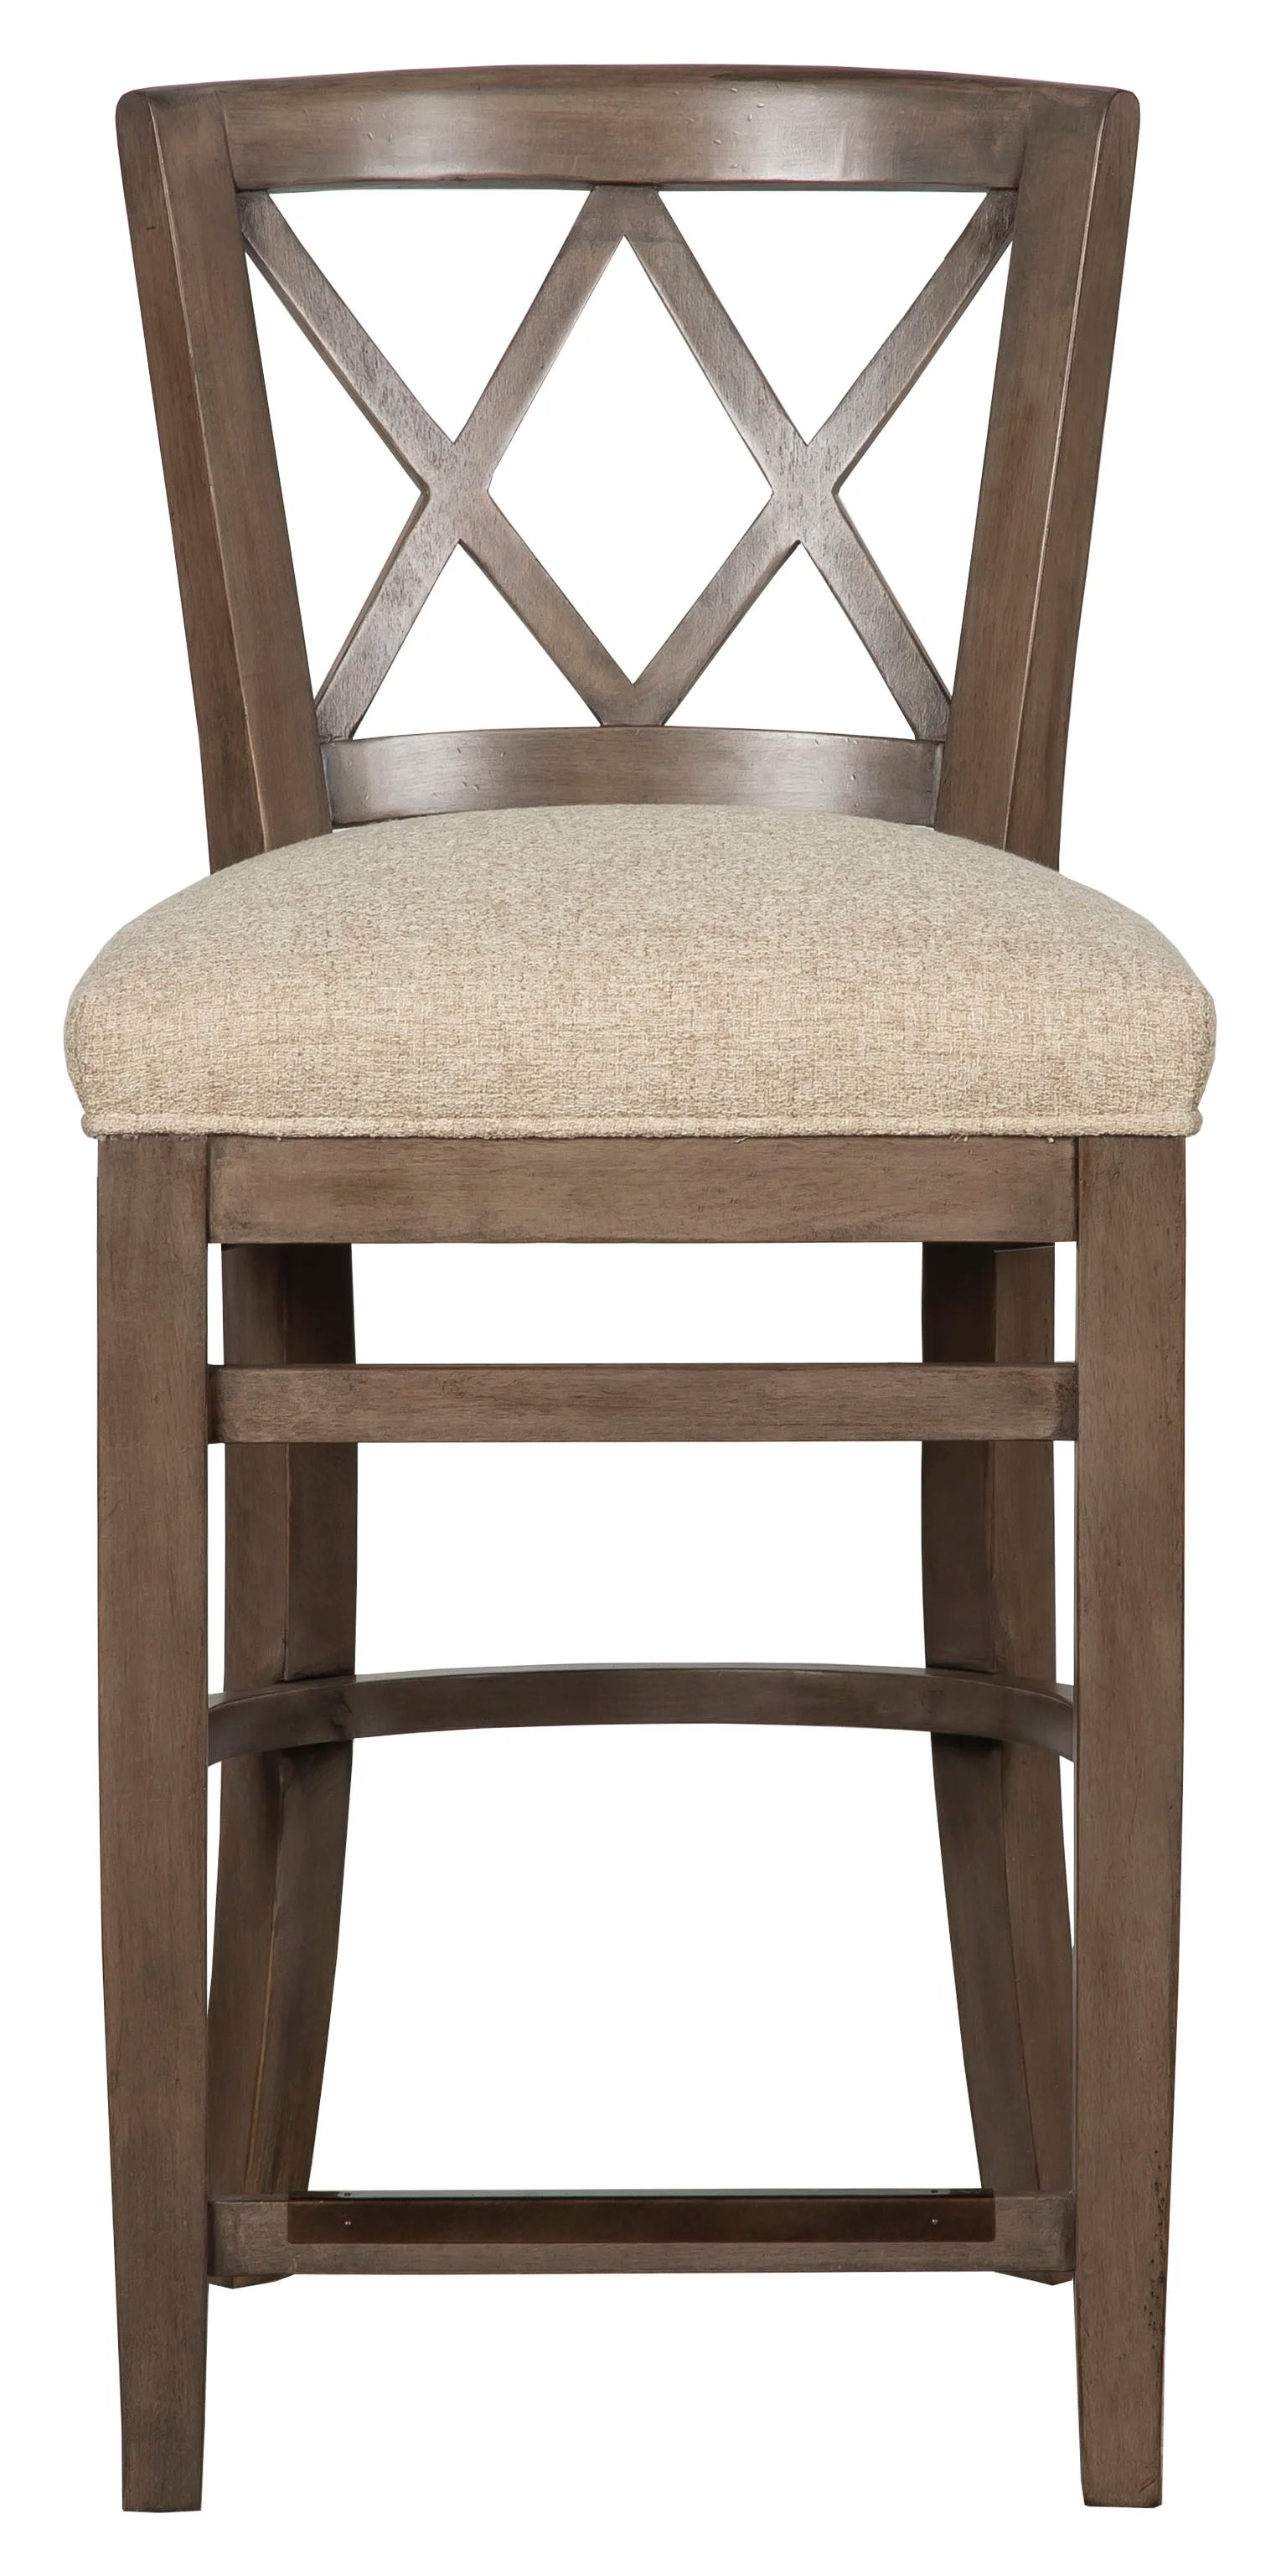 French Country Made In The Usa Bar Stools Counter Stools You Ll Love In 2021 Wayfair